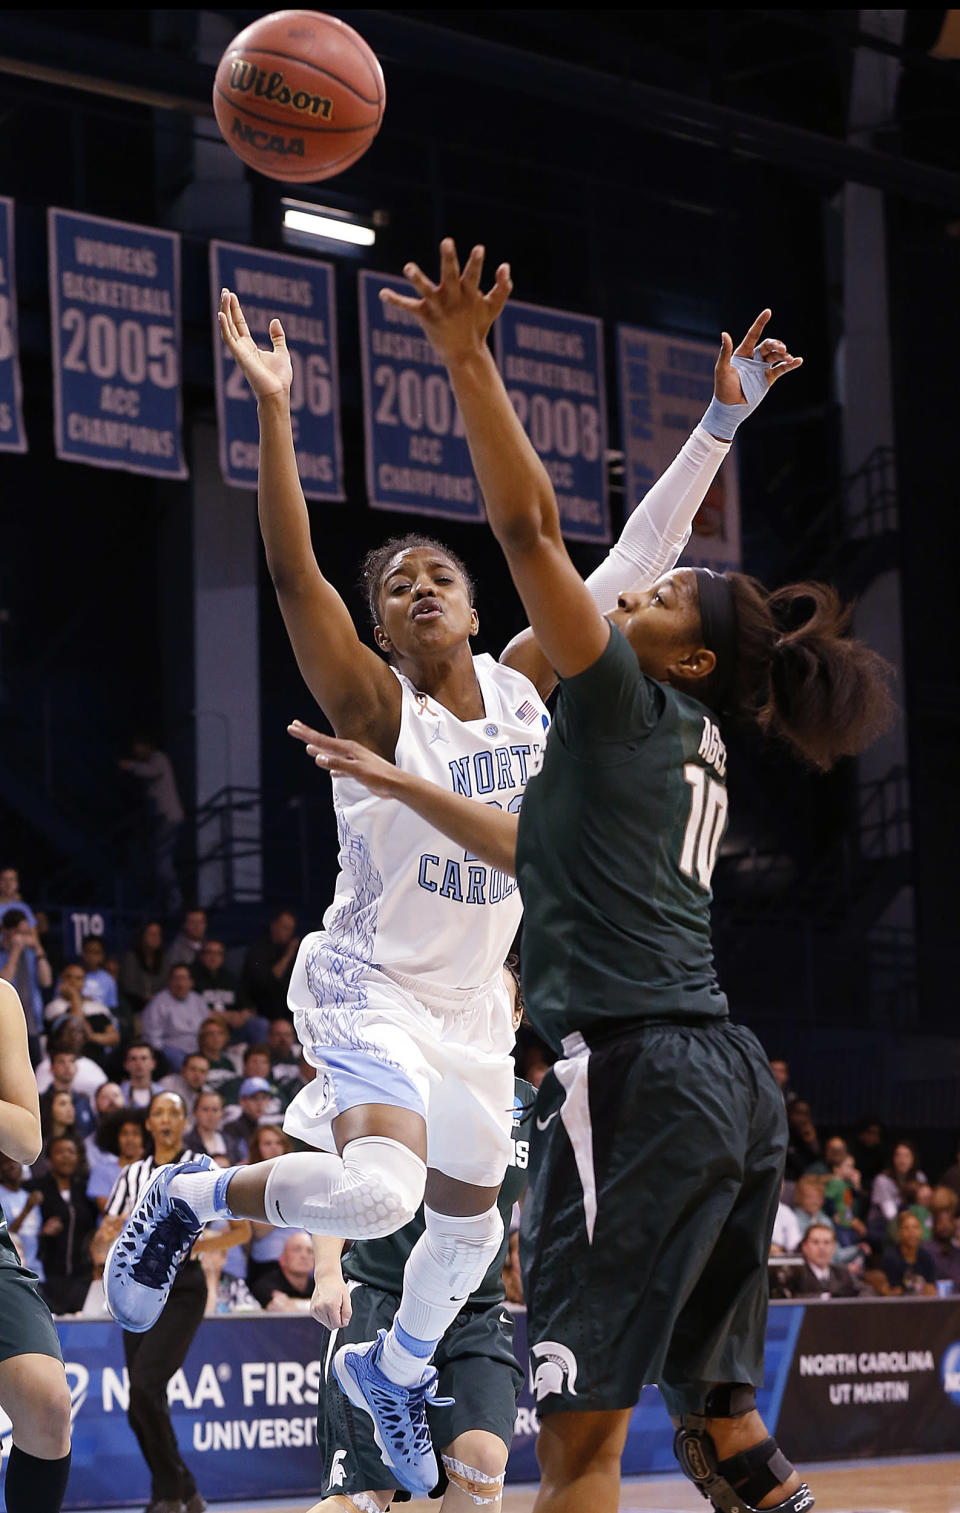 North Carolina's Diamond DeShields, left, battles Michigan State's Branndais Agee for the ball during the second half of a second-round game of the NCAA college basketball tournament in Chapel Hill, N.C. Tuesday, March 25, 2014. North Carolina beat Michigan State 62-53. (AP Photo/Ellen Ozier)